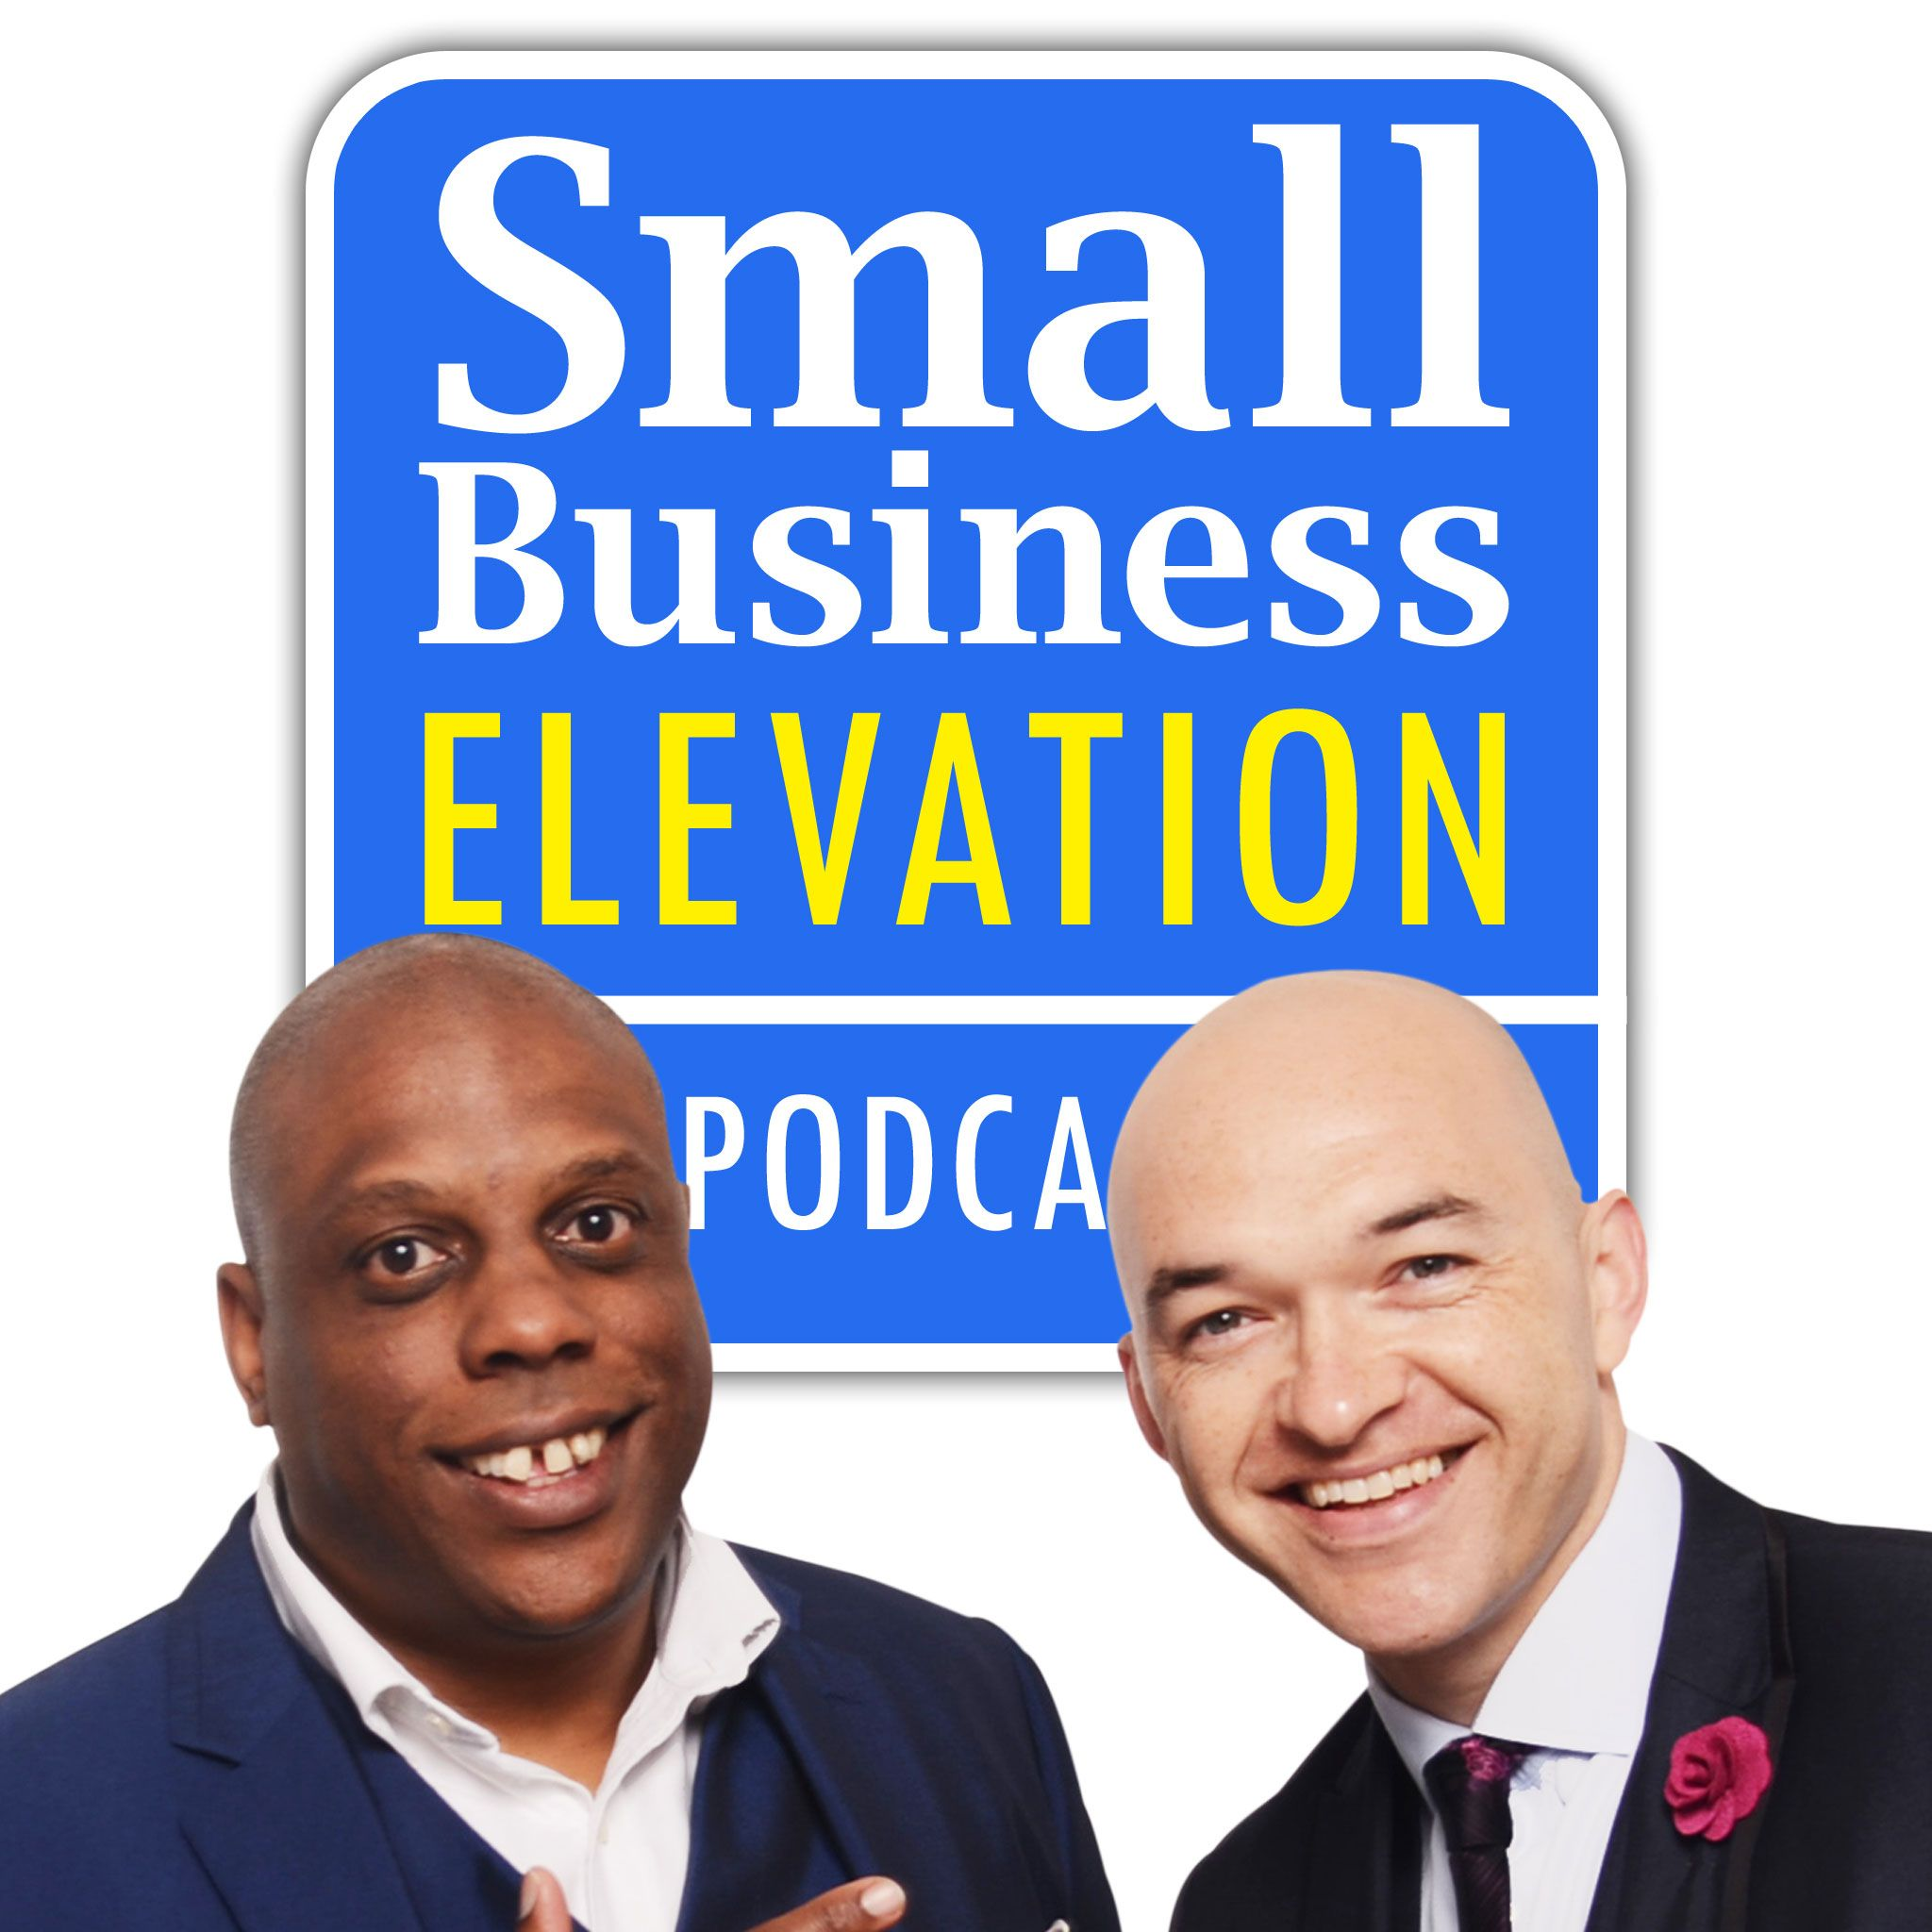 SBE055 - John Lee - How to Double or Triple Revenue In 30 days or Less